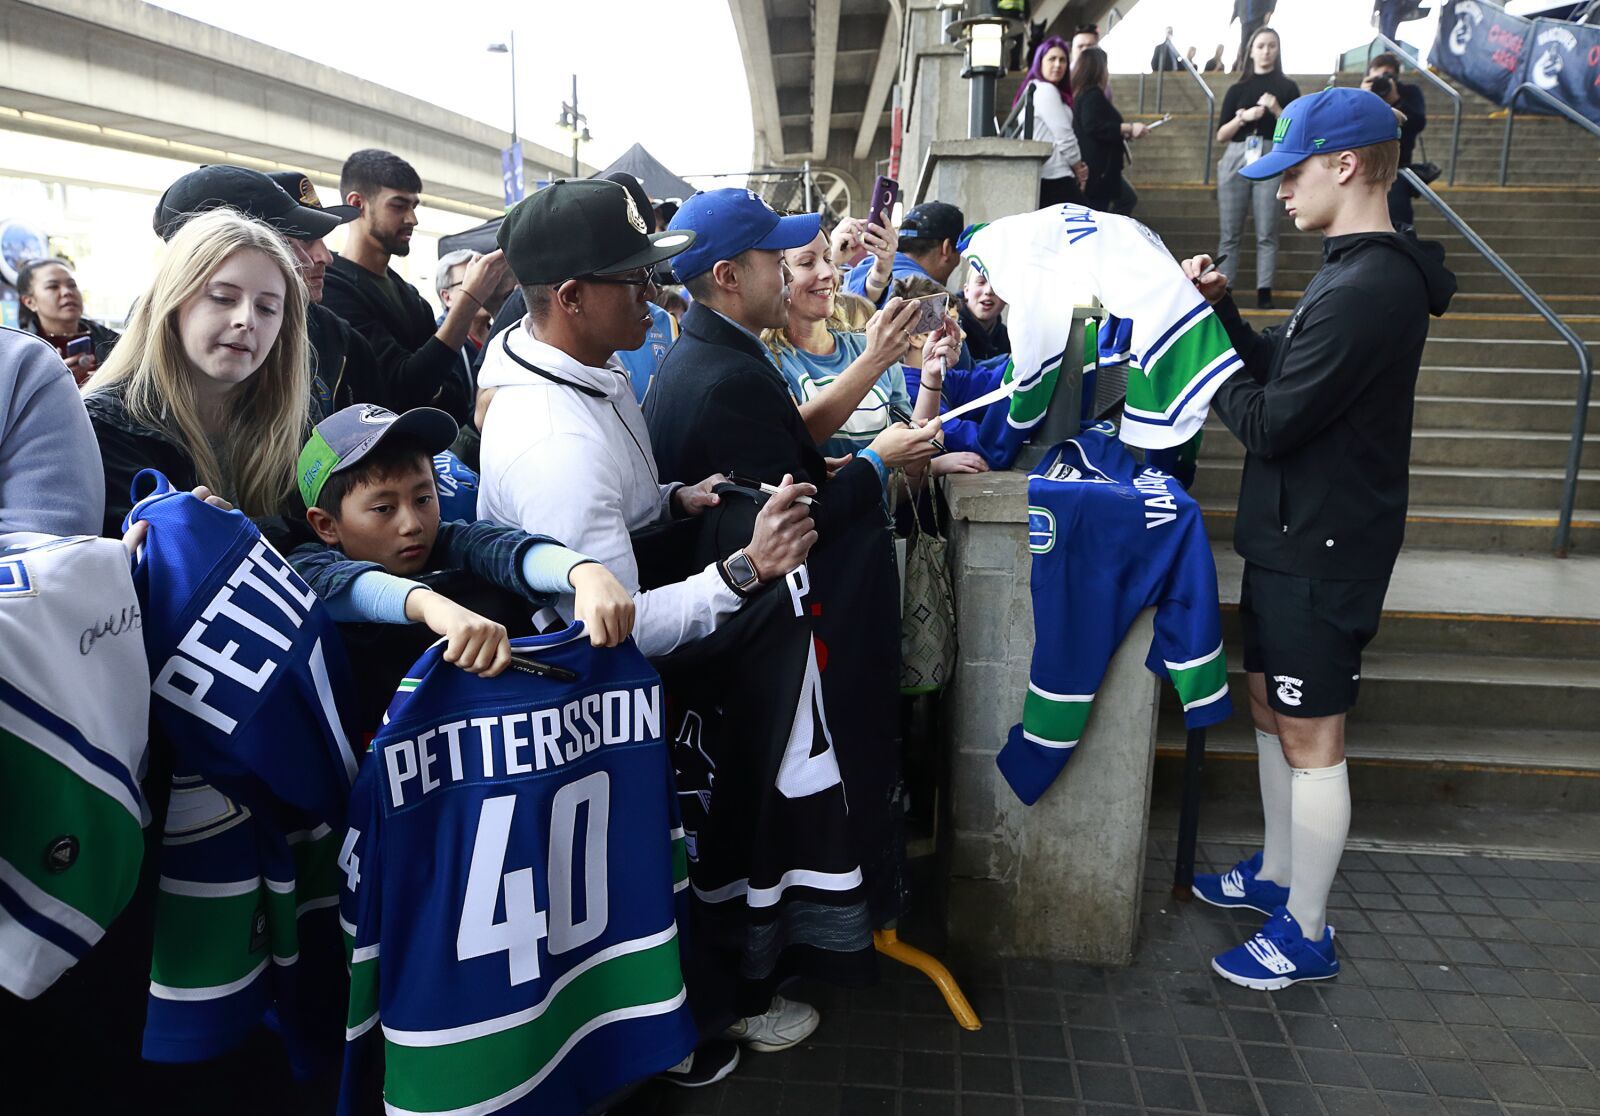 Vancouver Canucks: Thoughts on new and other rumoured jerseys